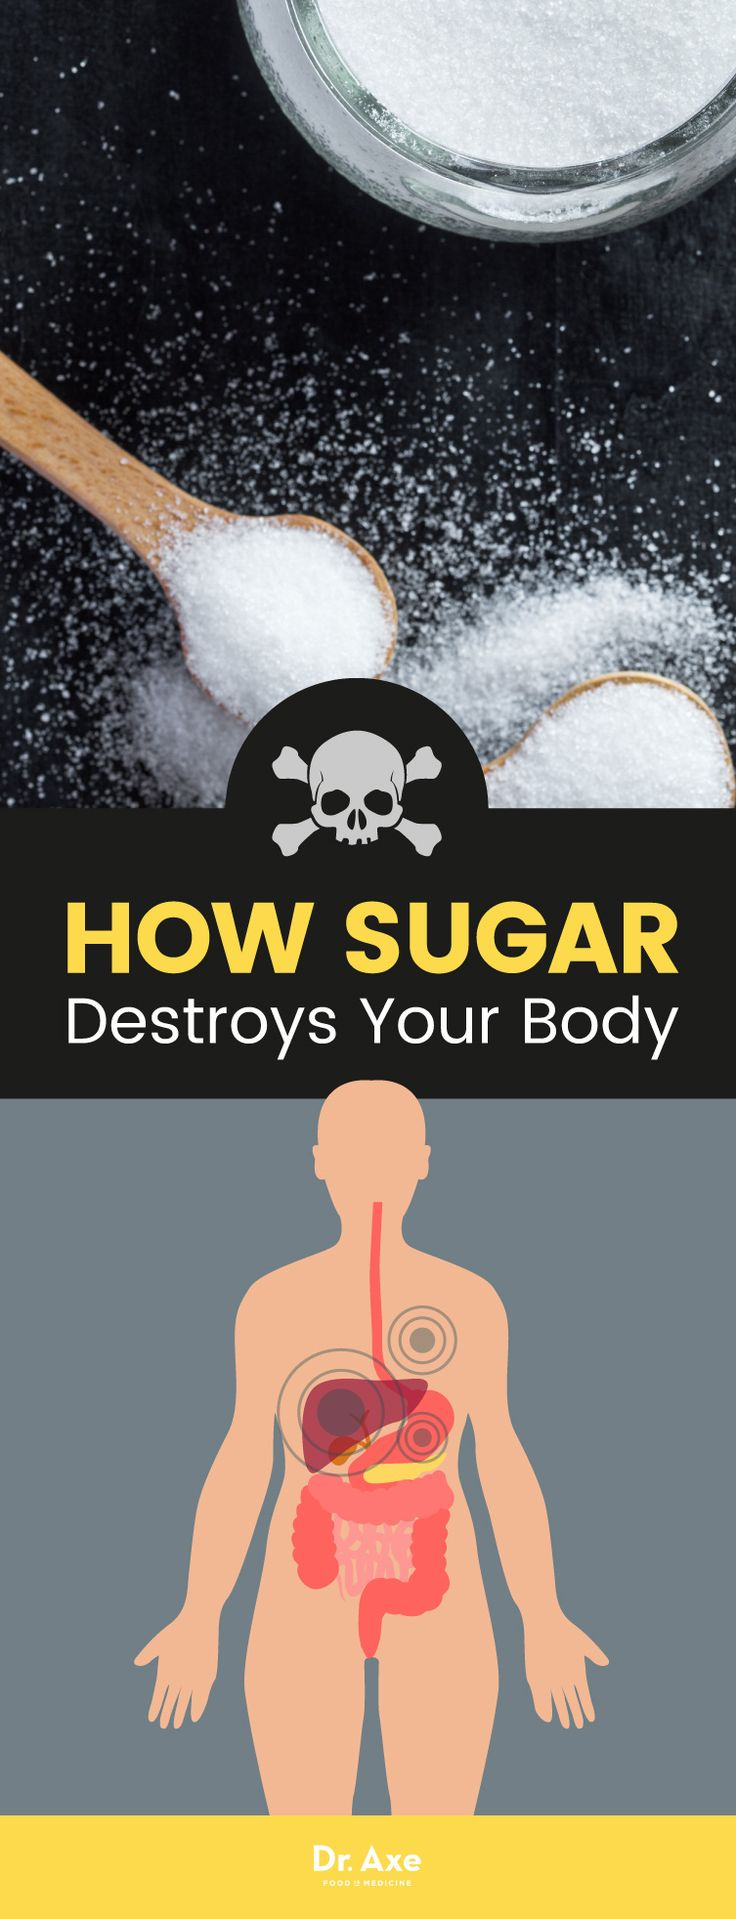 Although the sugar industry has actively fought to change public opinion about the health effects of sugar, we now know today that sugar impacts just about every organ system in the body.